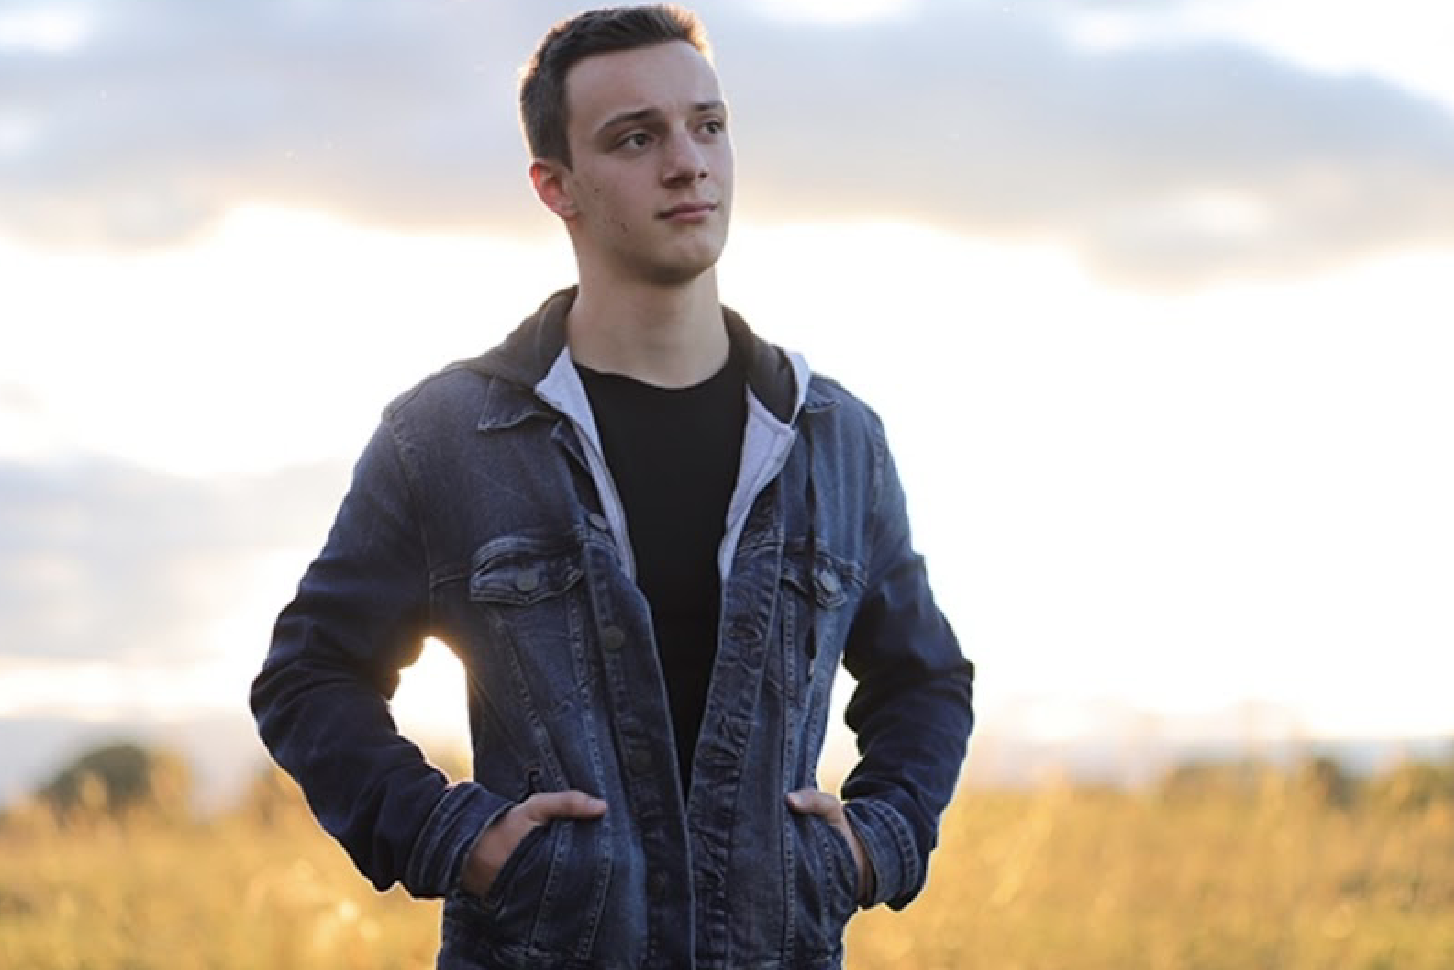 A student stands in a field with his hands in his jacket pocket. He stares into the distance with a slight smile on his face.